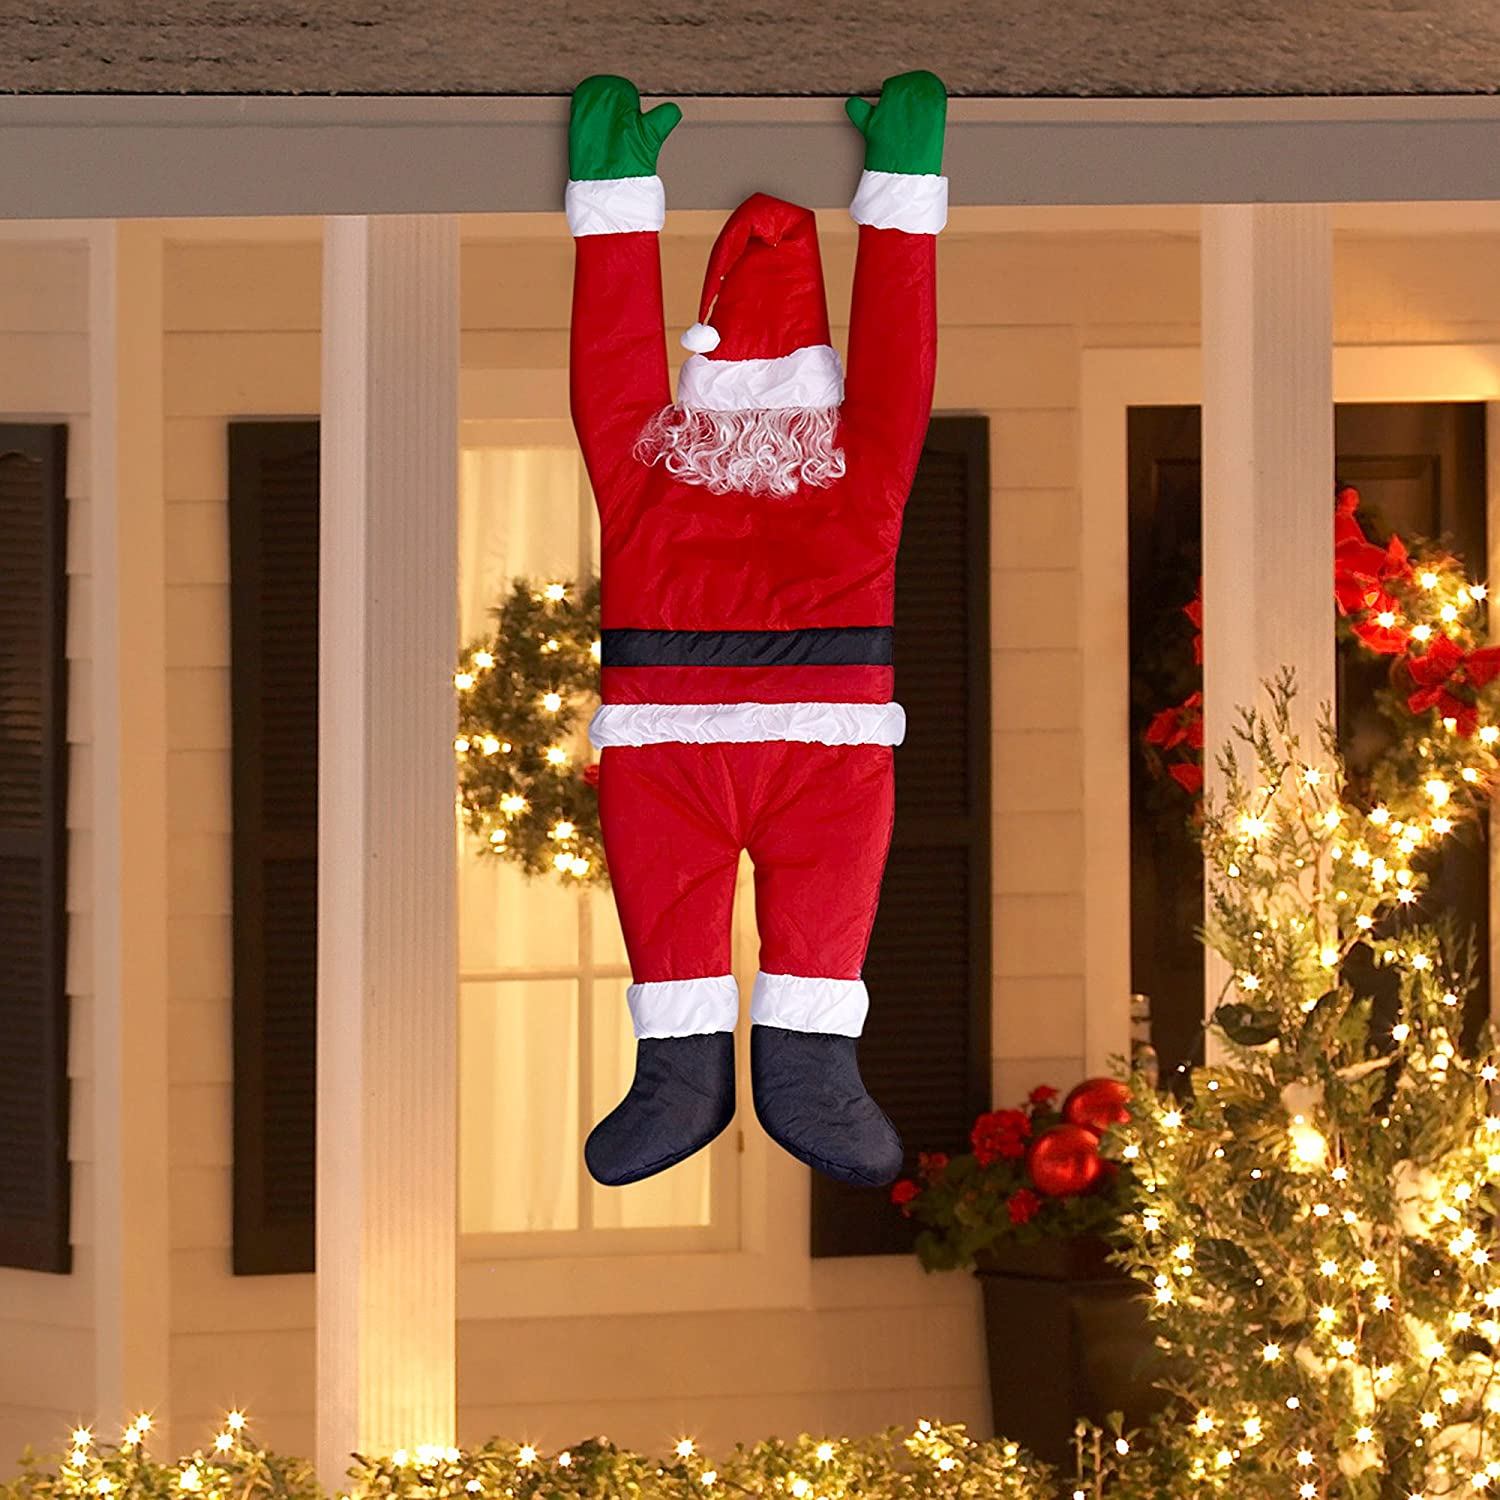 for outside size amazing of photos decorations luxury lights full decor decoration christmas large wholesale noel lighted and outdoor